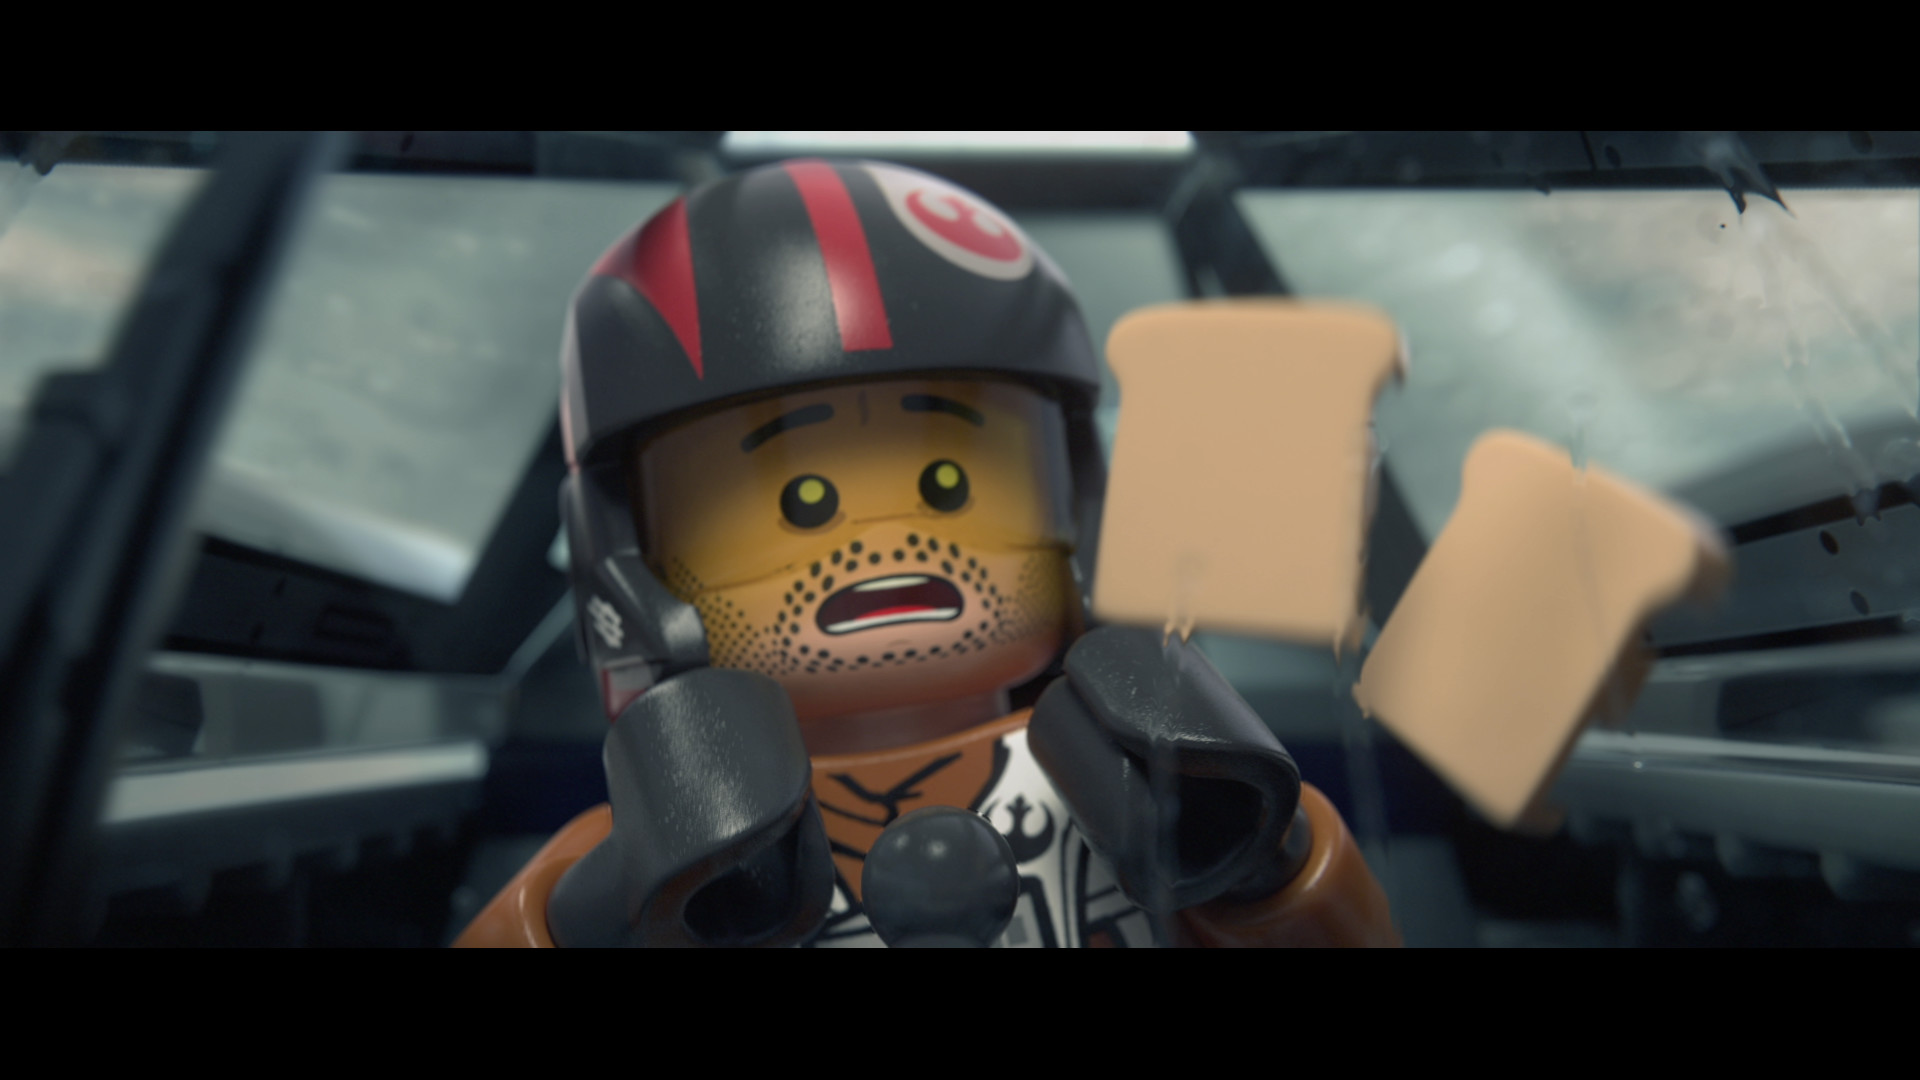 LEGO Star Wars: The Force Awakens - Season Pass screenshot